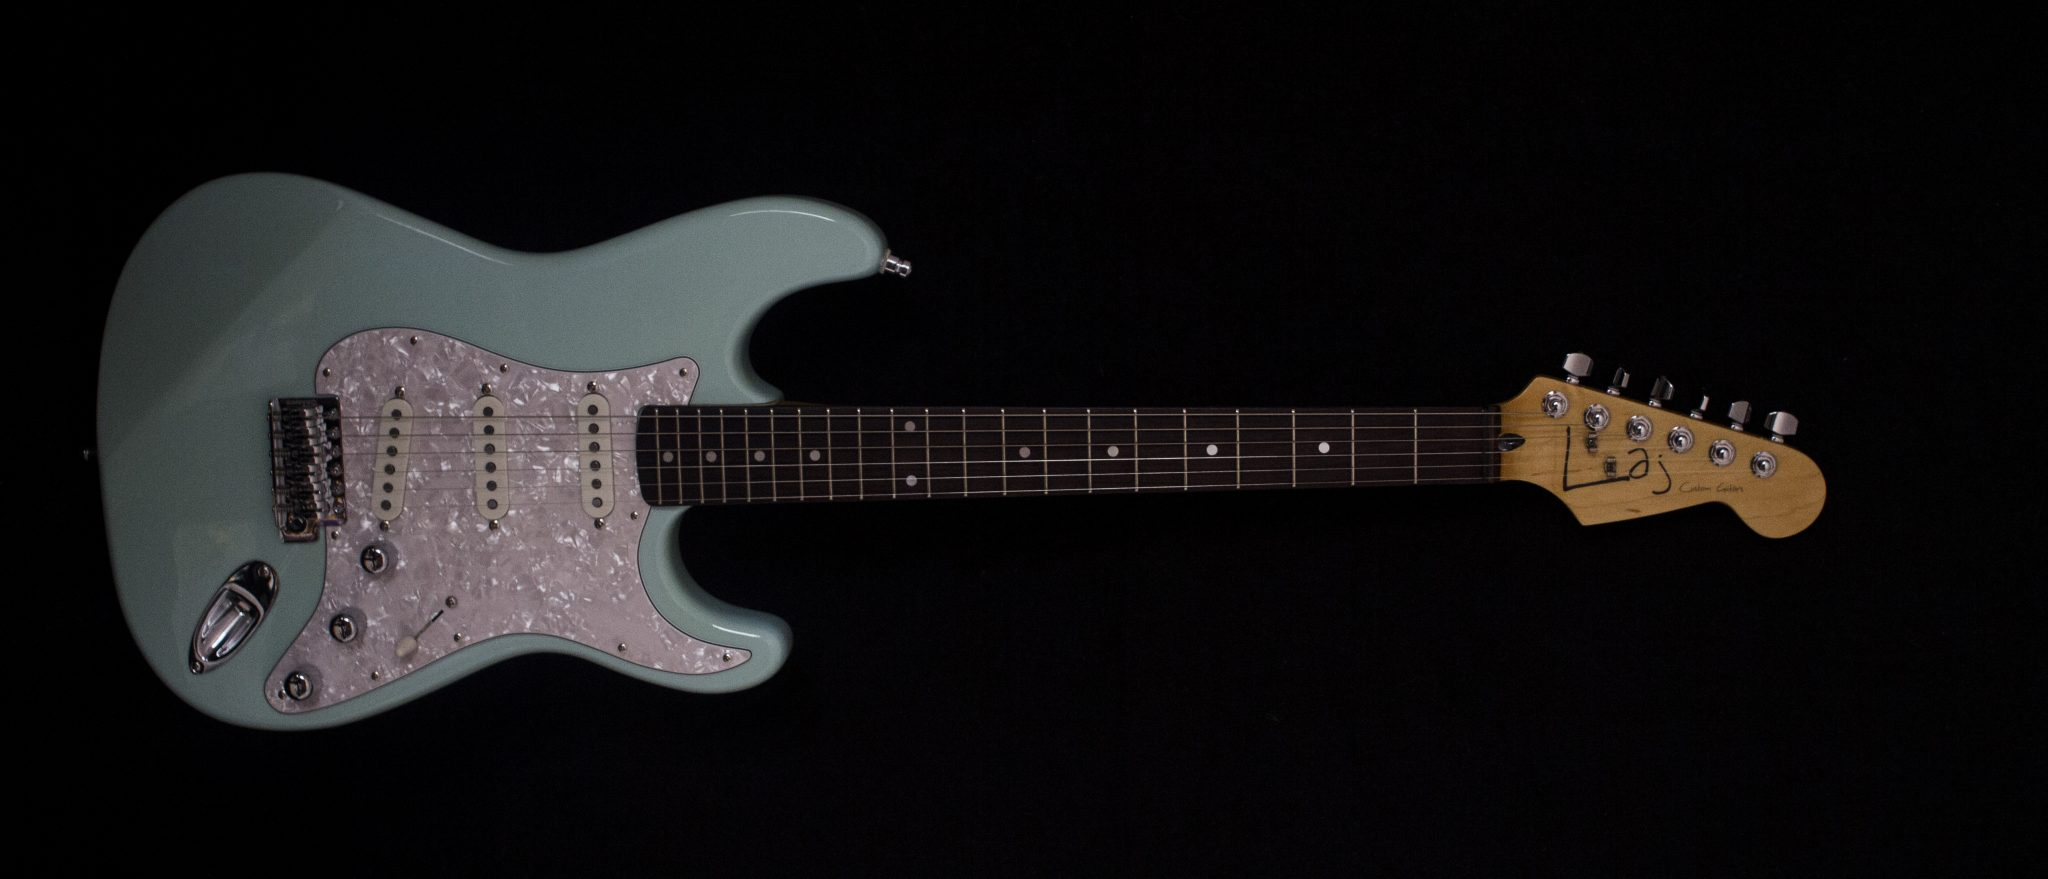 IMG 1849 - Laj Custom Guitars Strat Blue